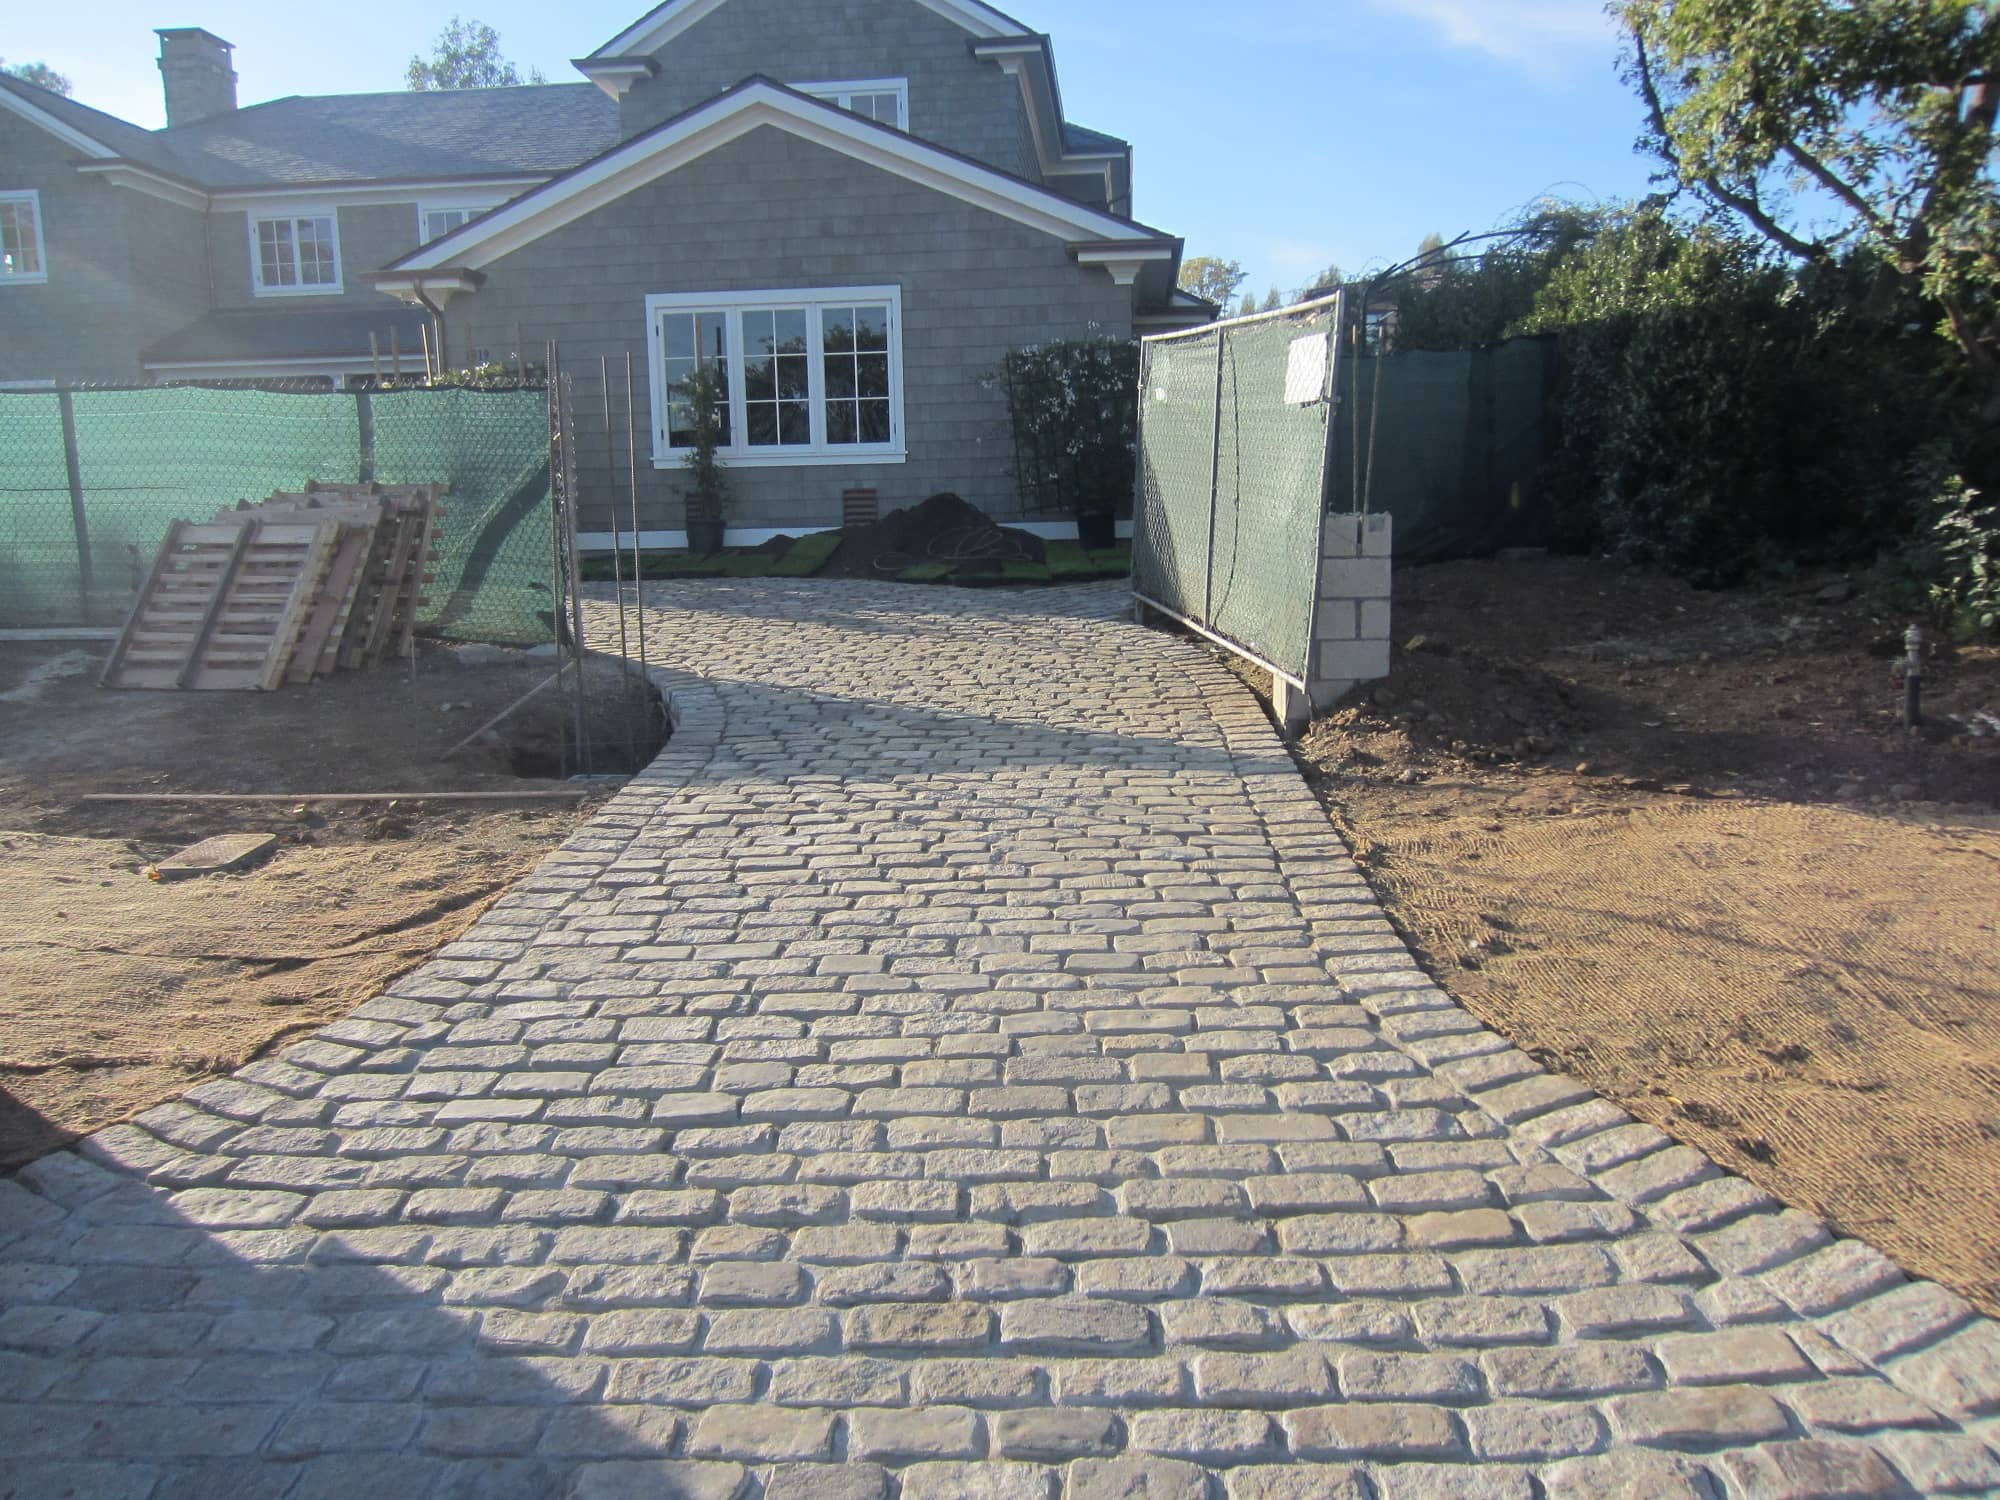 You can view the driveway entrance, paved with Salt and Pepper Cobblestone. It's a big beautiful house with an equally beautiful driveway.